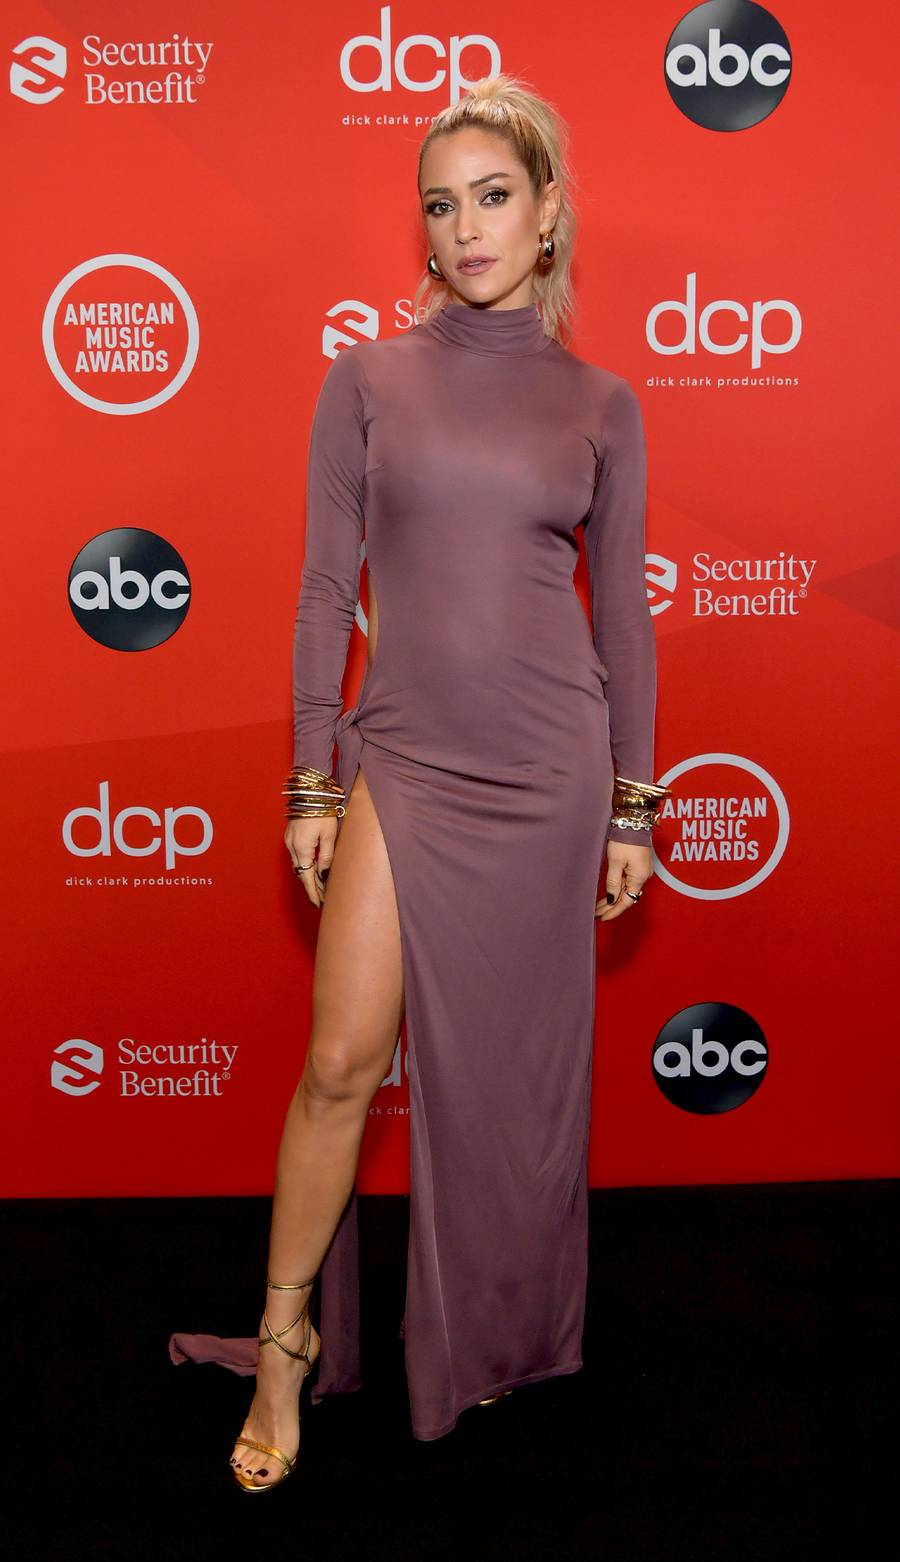 kristin-cavallari-in-attico-american-music-awards-2020